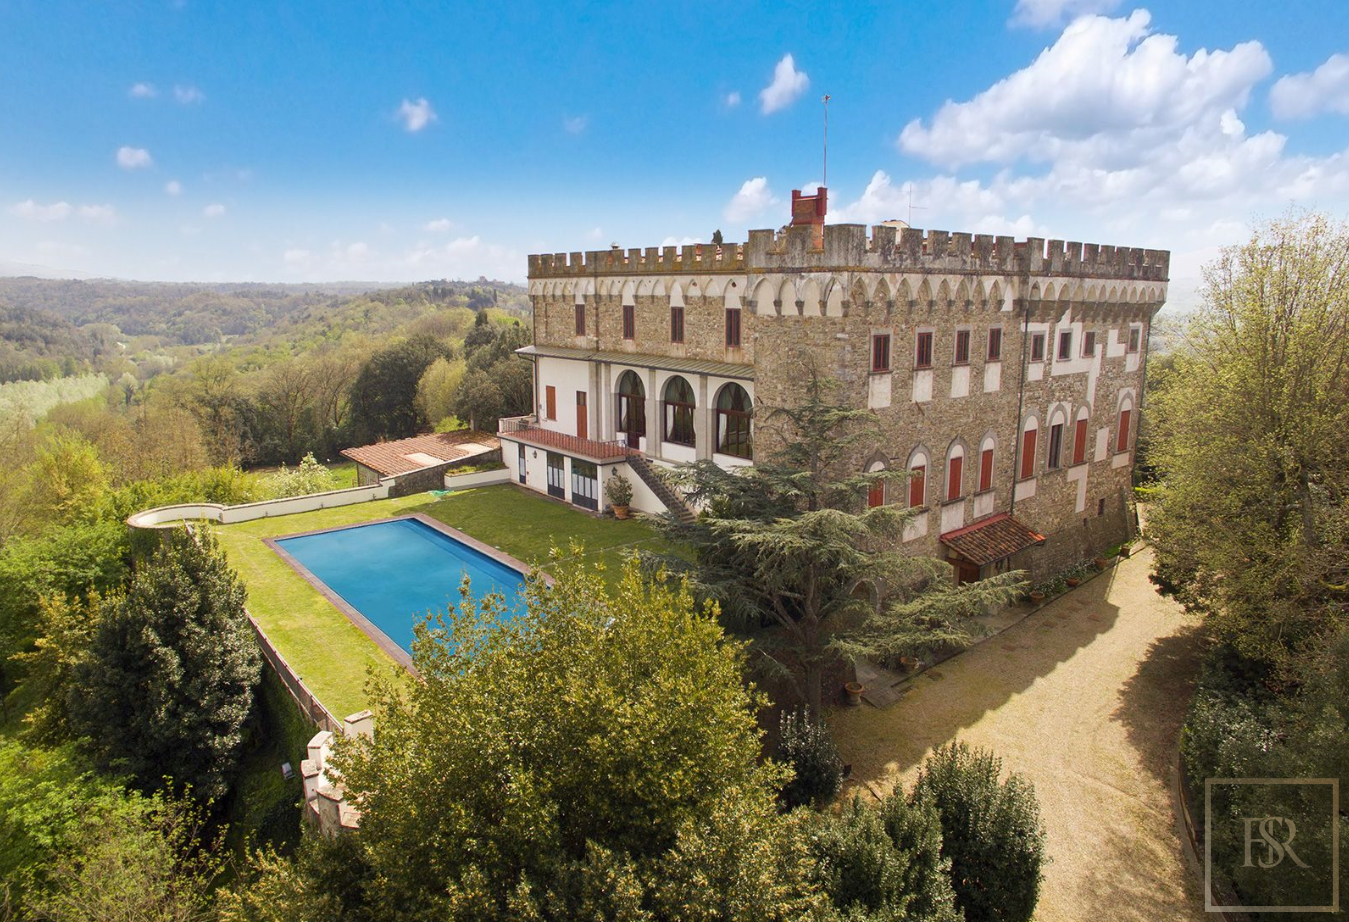 Luxury 1427 Castle in Tuscany Florence for sale | For Super Rich